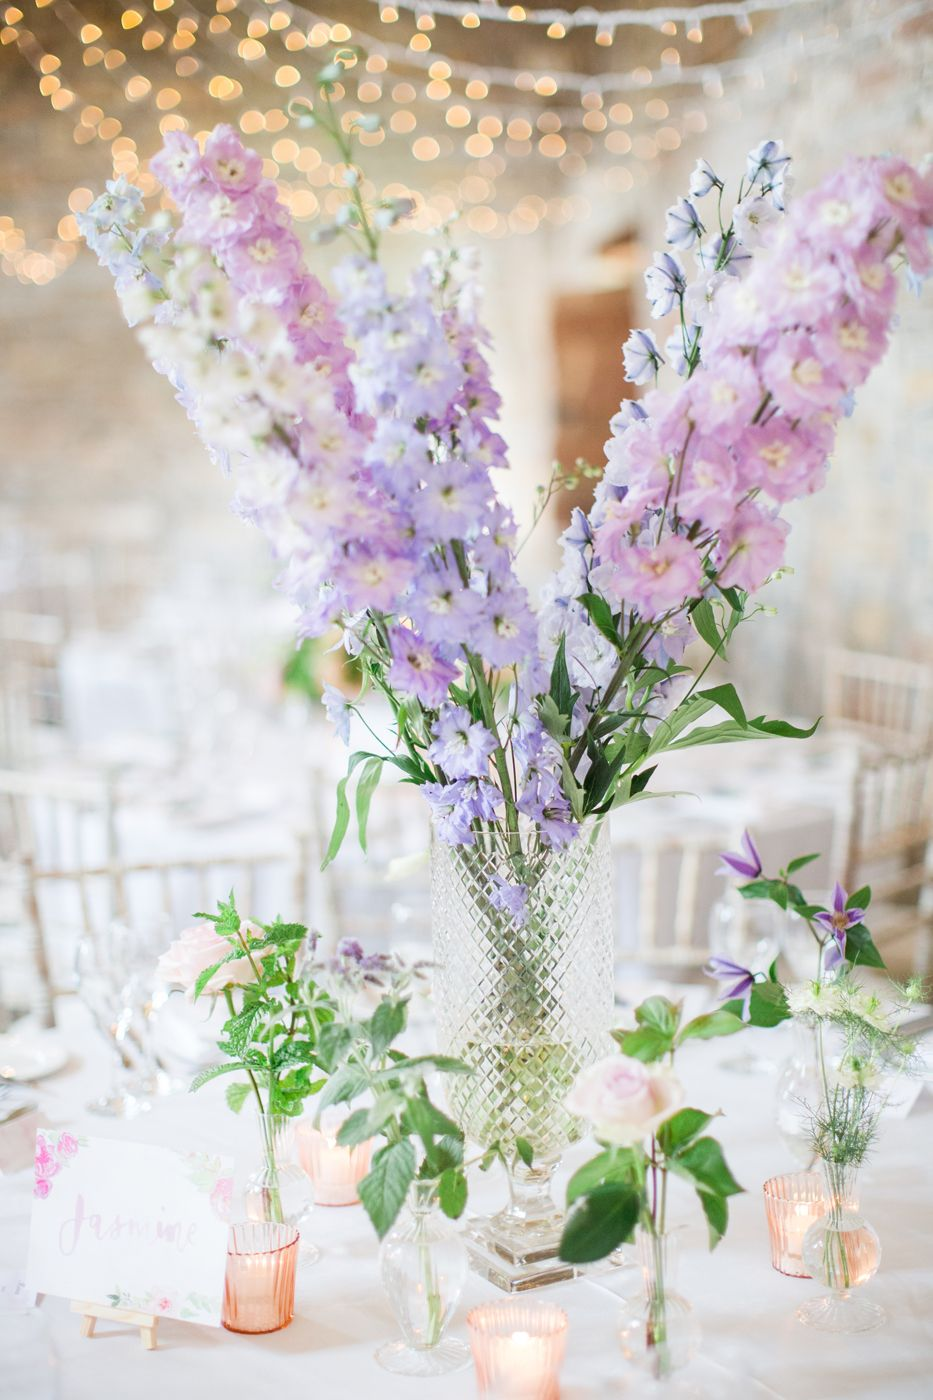 English Countryside Wedding Inspired by Gardening | Countryside ...